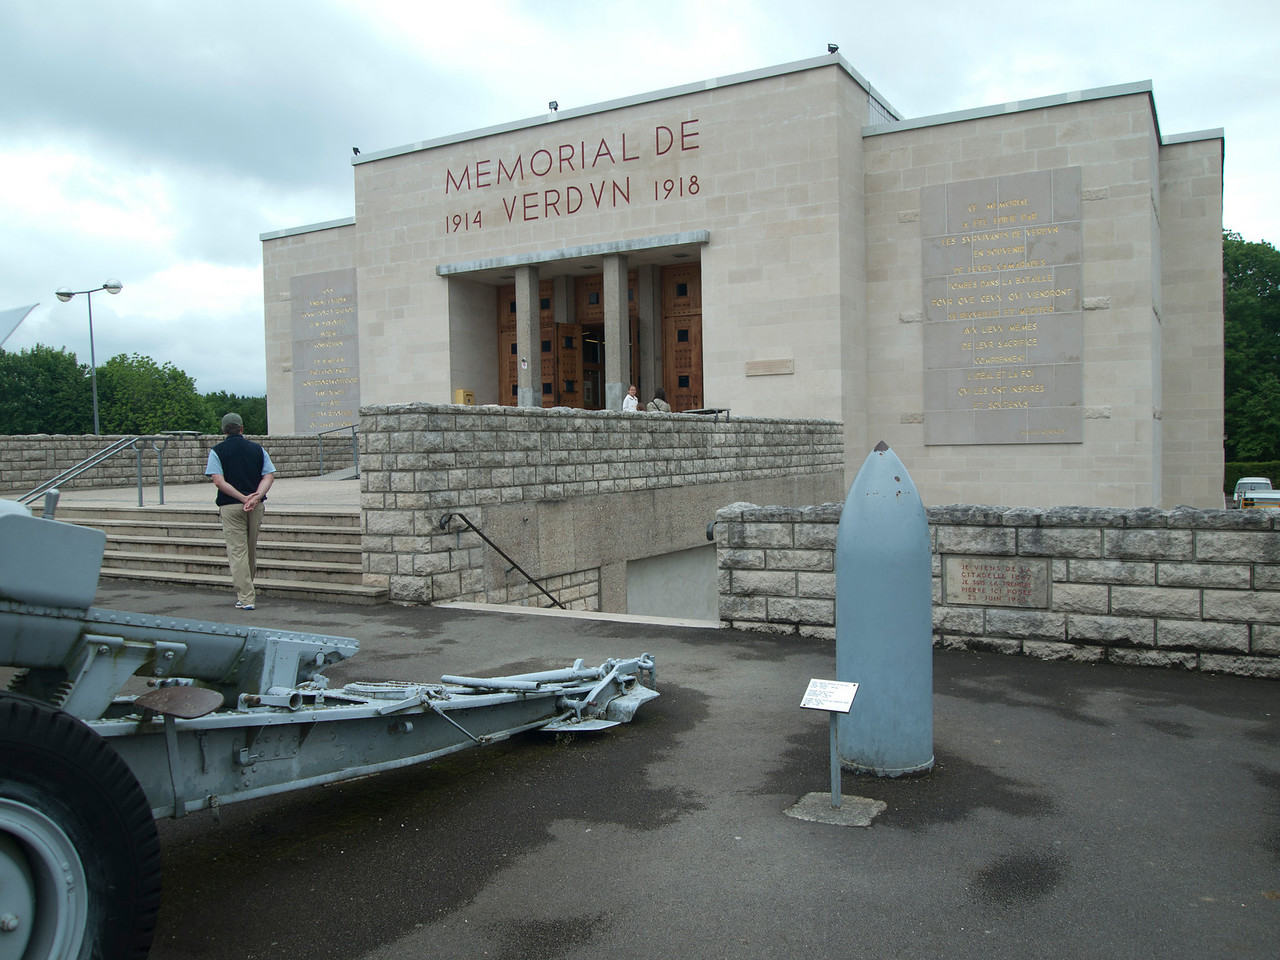 Mike entering the Verdun memorial museum